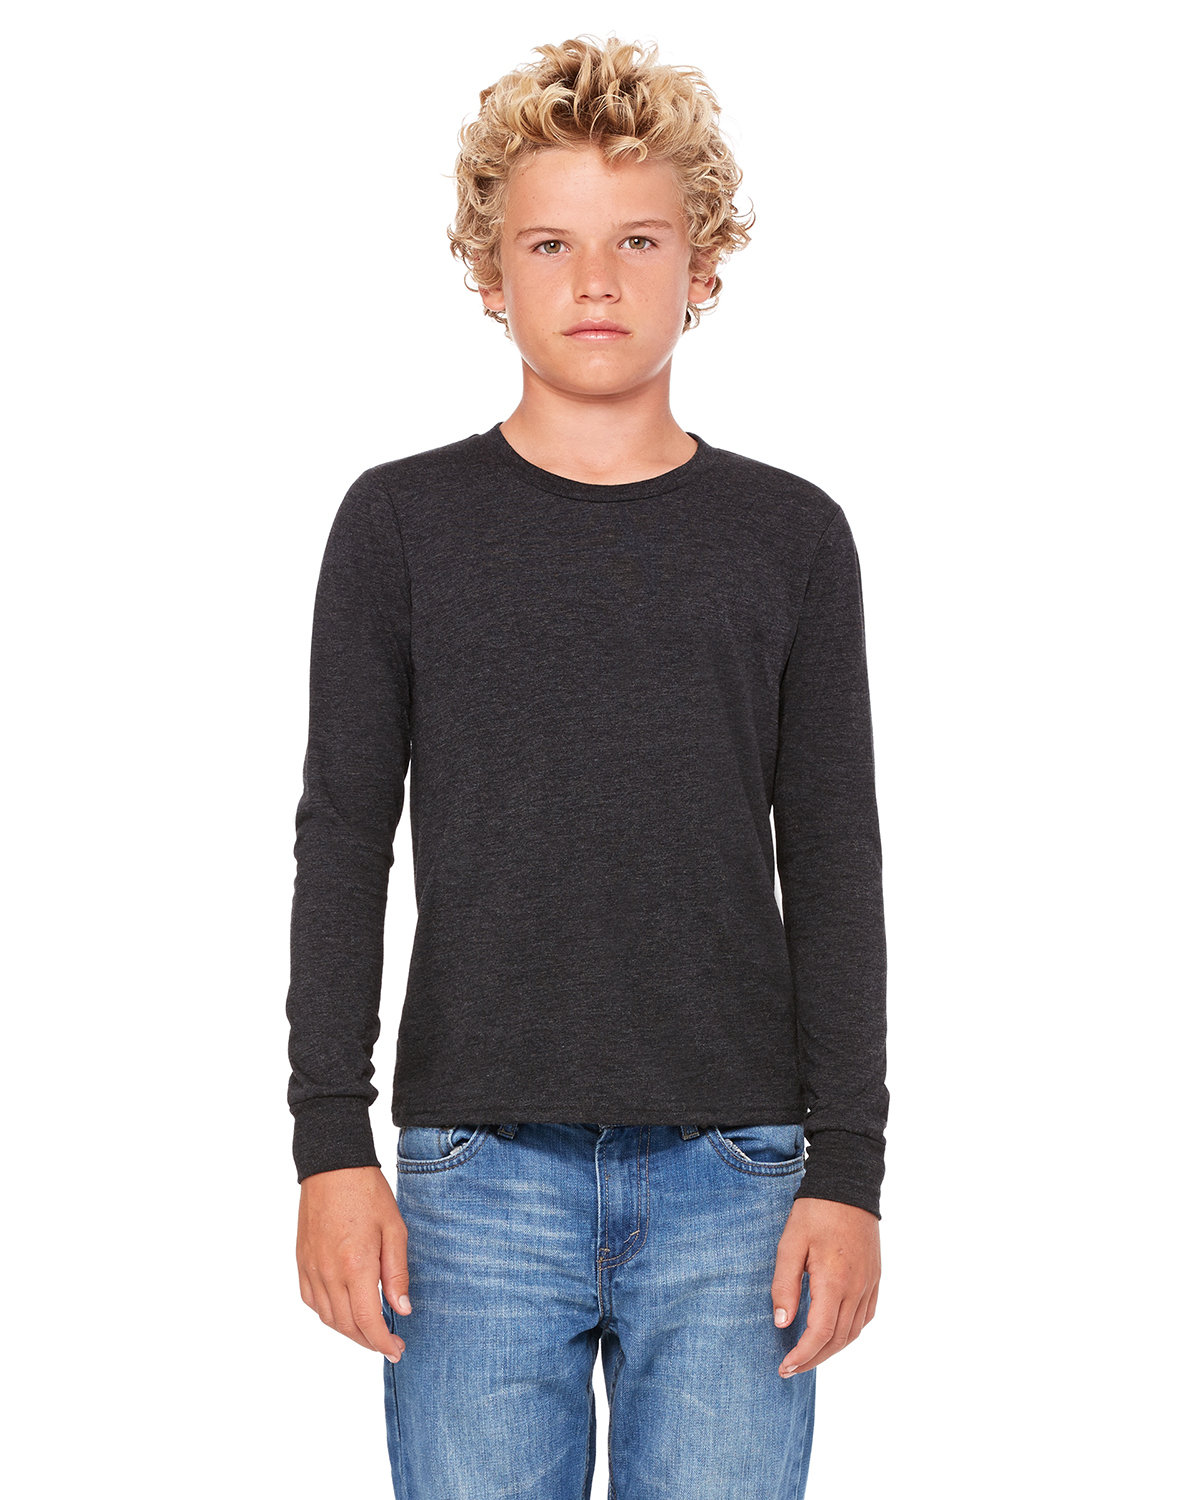 Bella + Canvas Youth Jersey Long-Sleeve T-Shirt CHAR-BLK TRIBND